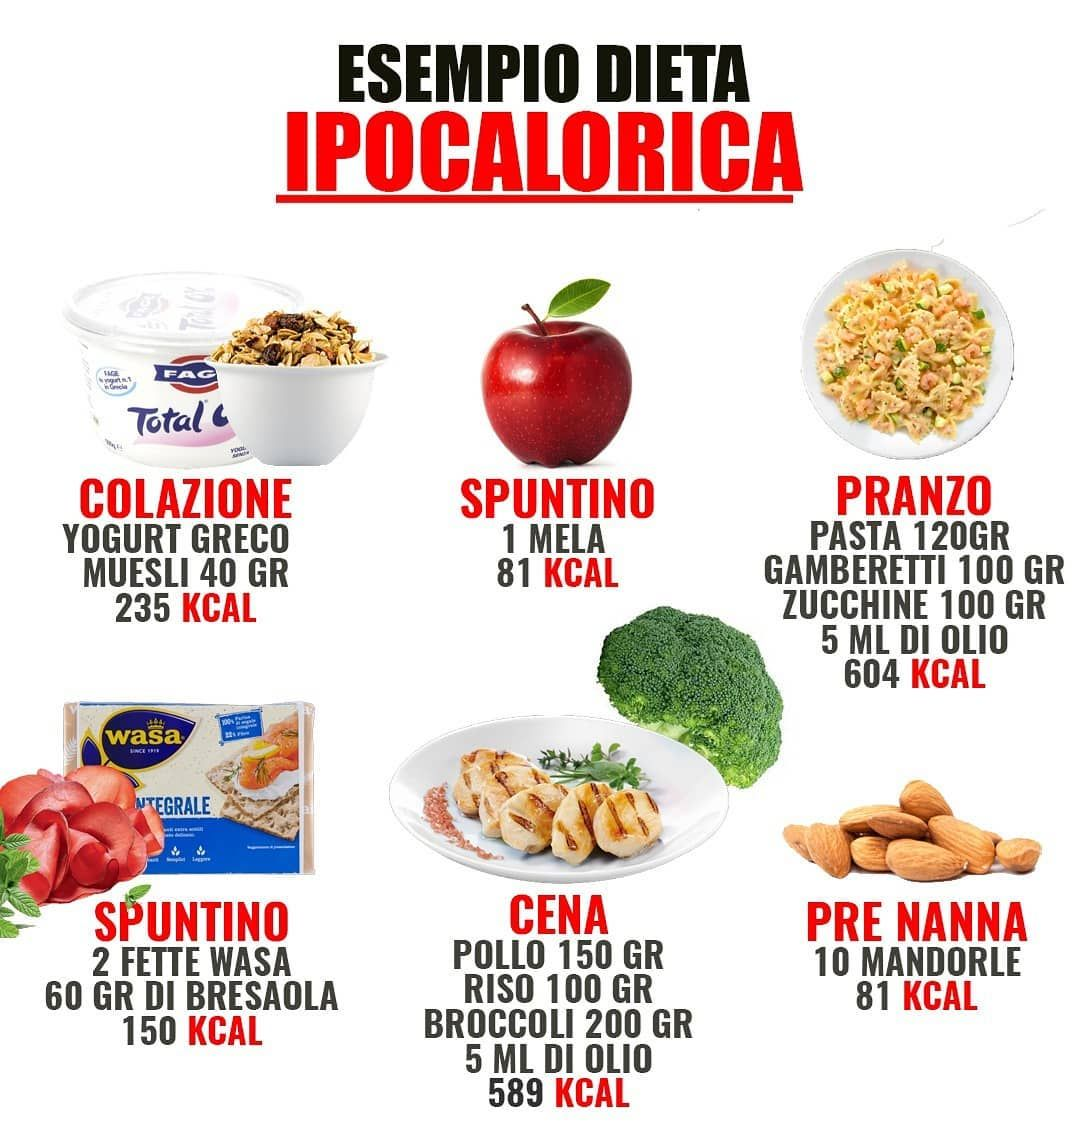 L Immagine Puo Contenere Testo Workout Food Health Food Diet And Nutrition